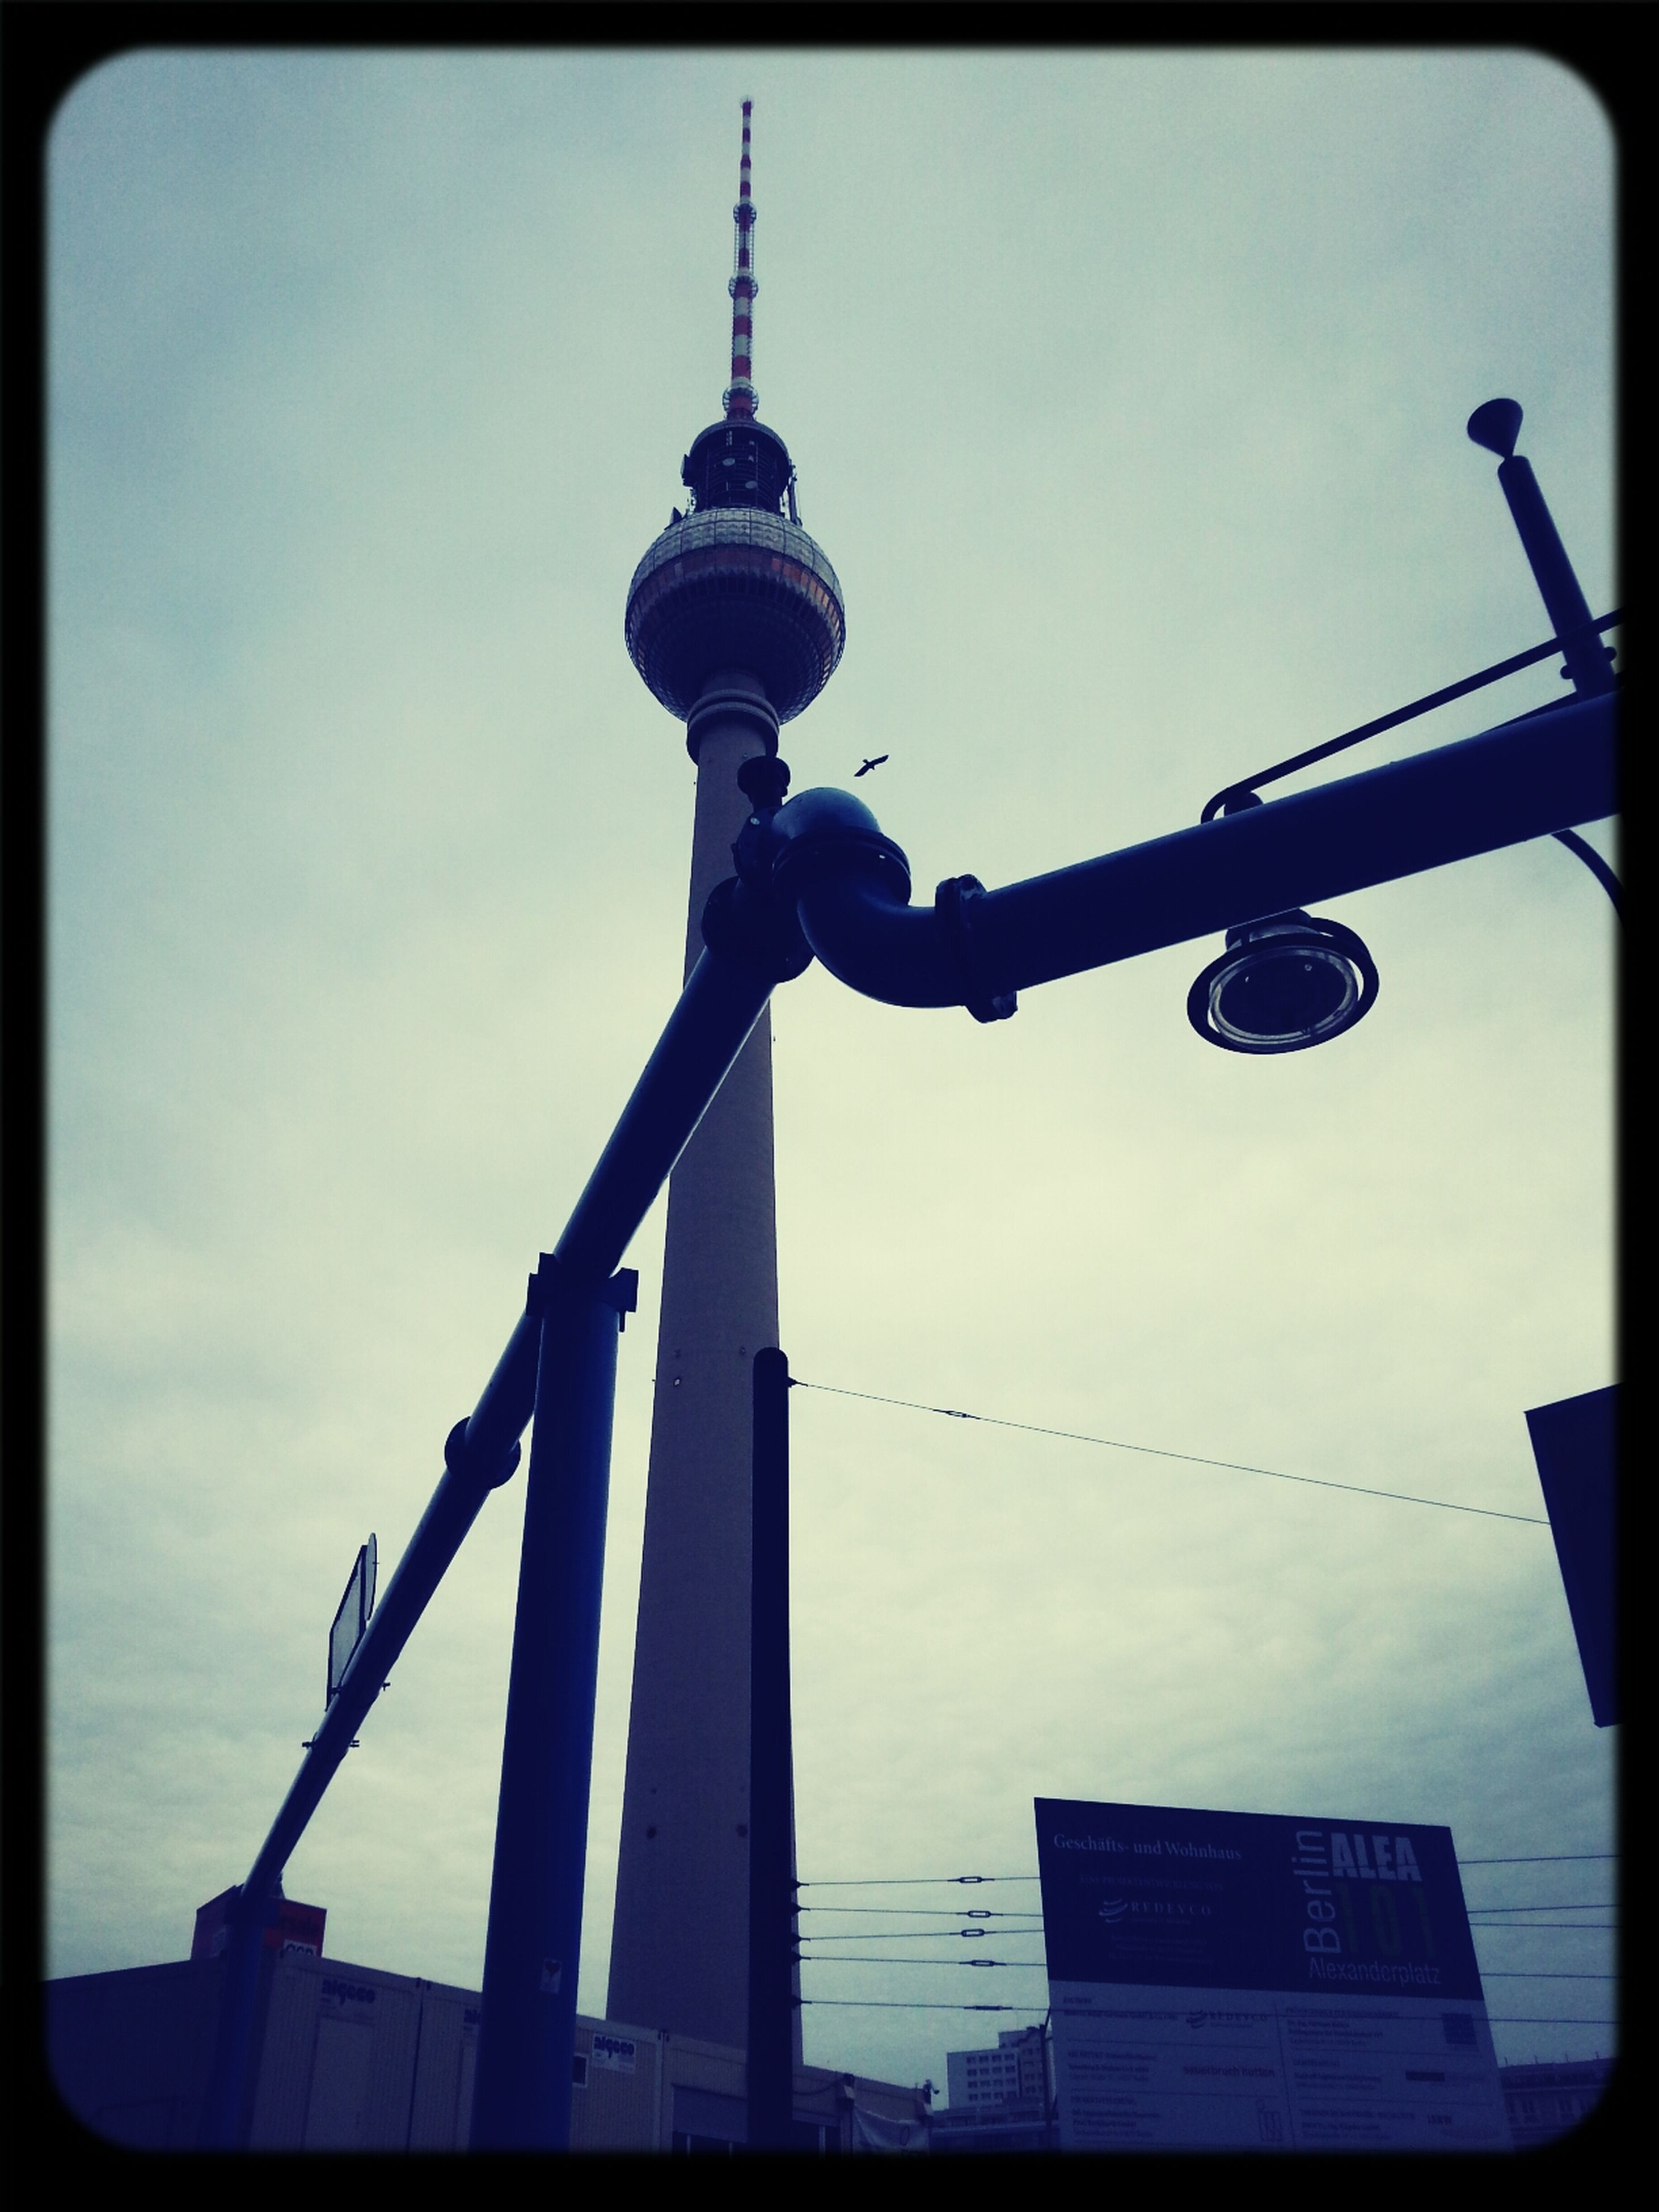 transfer print, communications tower, tower, communication, low angle view, architecture, built structure, tall - high, auto post production filter, sky, building exterior, fernsehturm, television tower, spire, travel destinations, international landmark, culture, capital cities, sphere, famous place